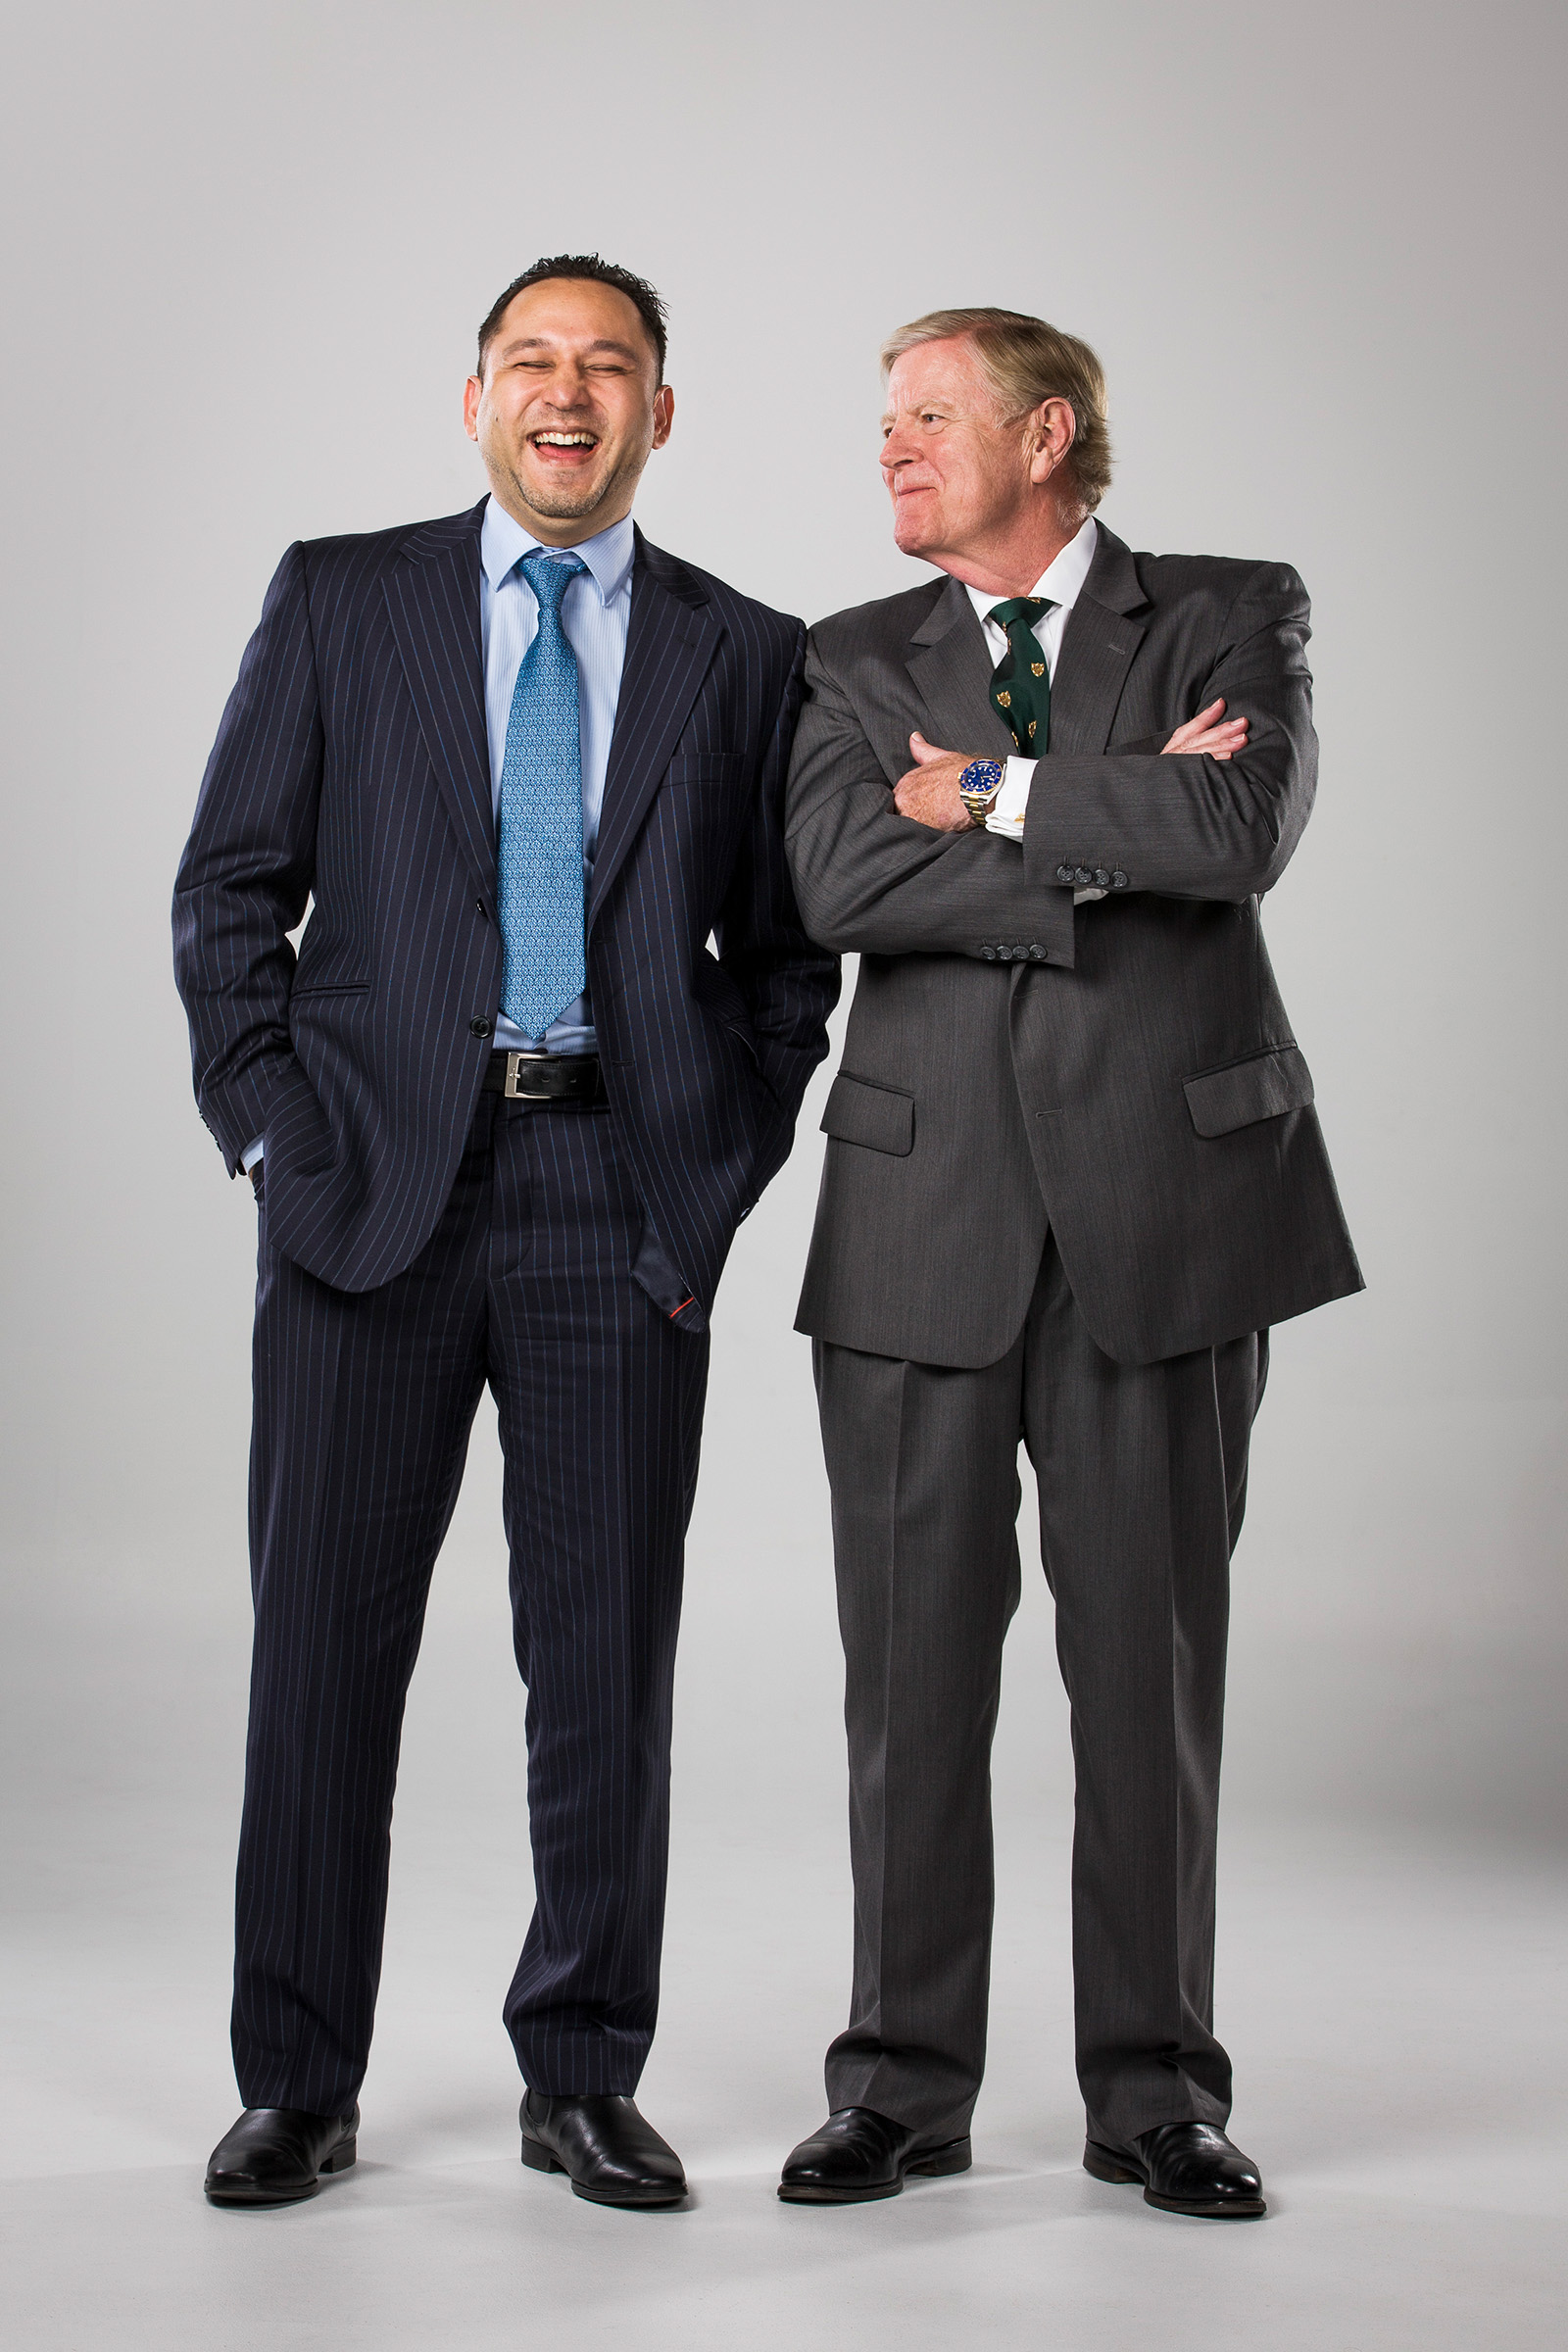 Corporate editorial studio photography of 2 men laughing wearing suit and ties